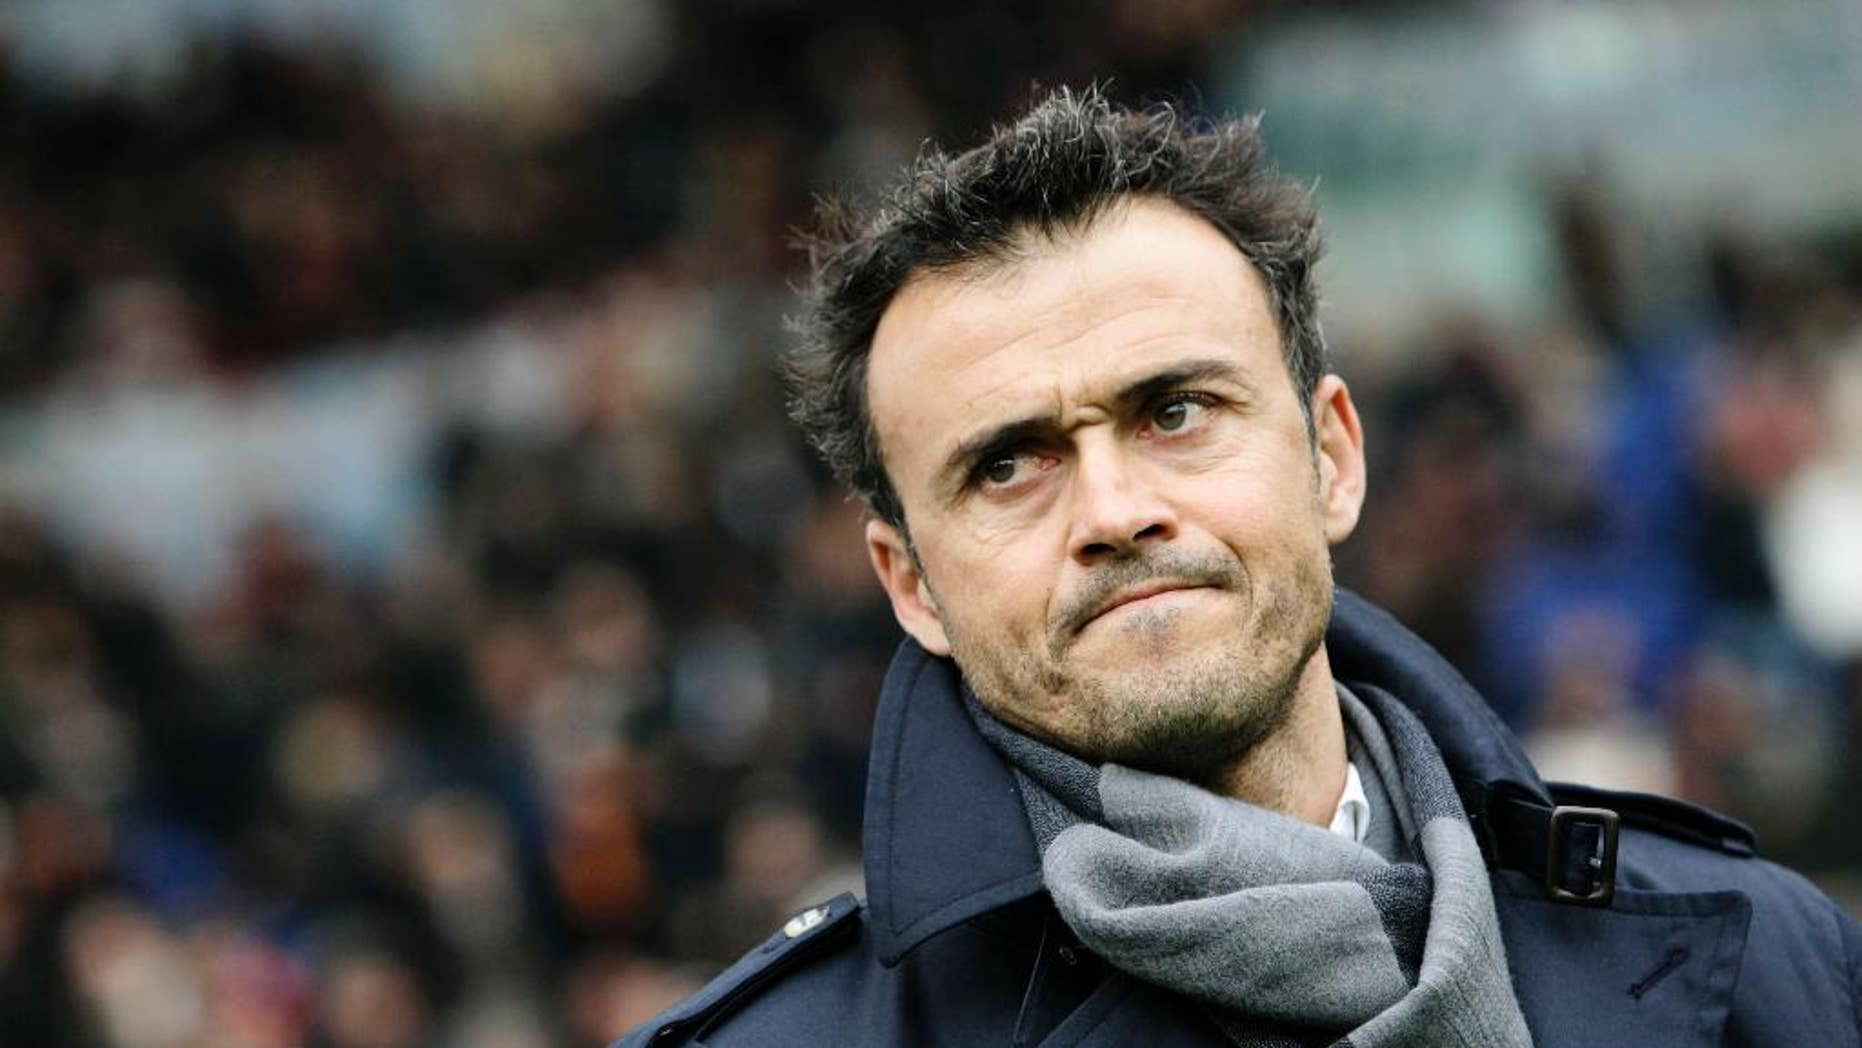 FILE - In this Sunday, Feb. 19, 2012, file photo, AS Roma coach Luis Enrique, of Spain, waits for the start of a Series A soccer match between AS Roma and Parma, at Rome's Olympic stadium. Barcelona has hired Luis Enrique as its new coach, succeeding Gerardo Martino who stepped down on Saturday after the club failed to defend its Spanish league title. Barcelona said on its website Monday, May 19, 2014, that Enrique has agreed to a two-year deal. (AP Photo/Riccardo De Luca, File)